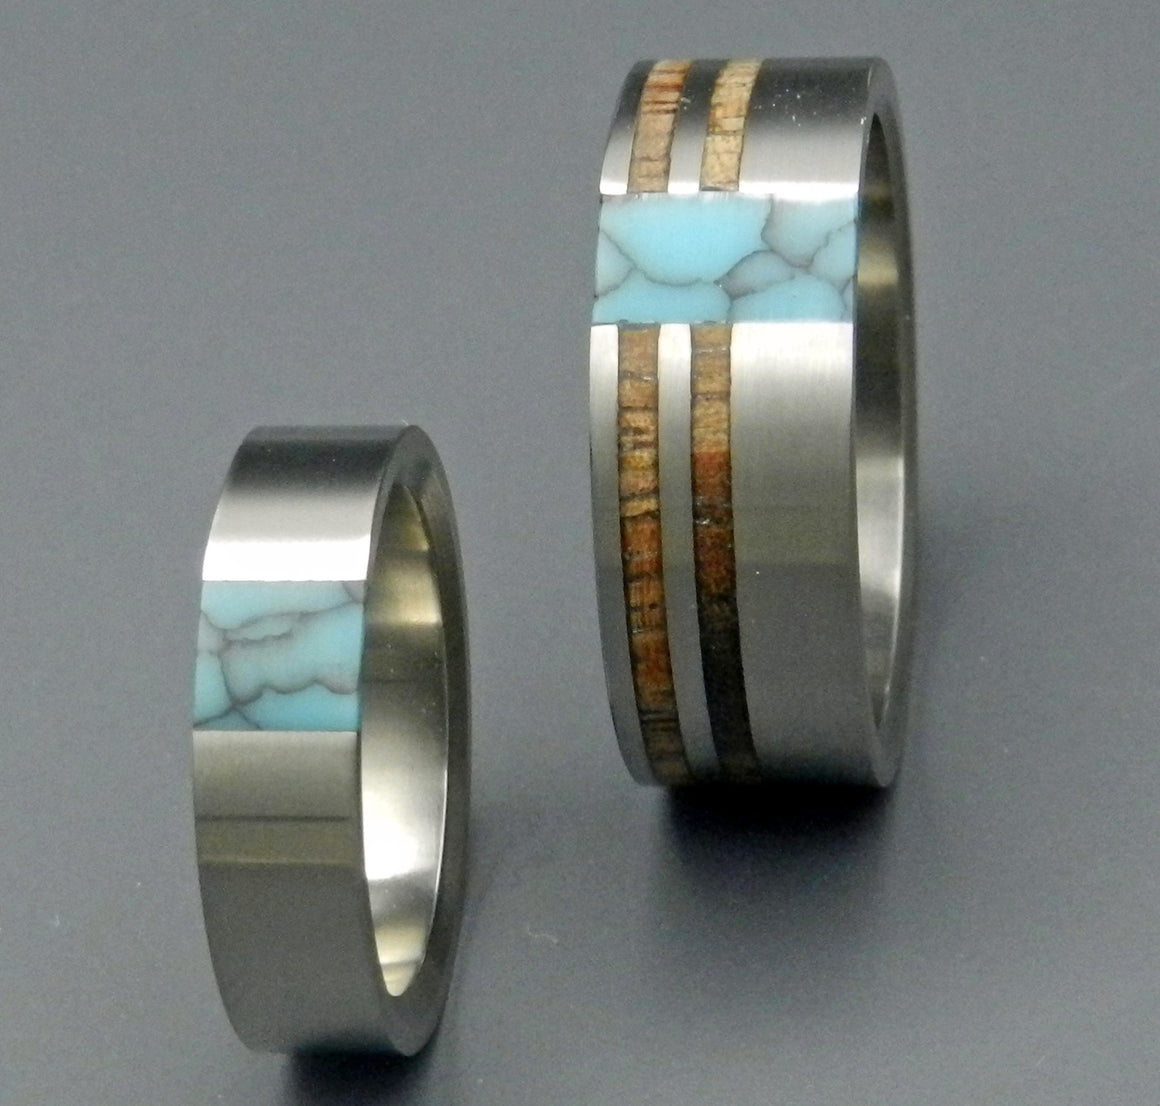 TRUE NORTH PARTNER | Turquoise & Hawaiian Koa Wood Wedding Rings Set - Minter and Richter Designs